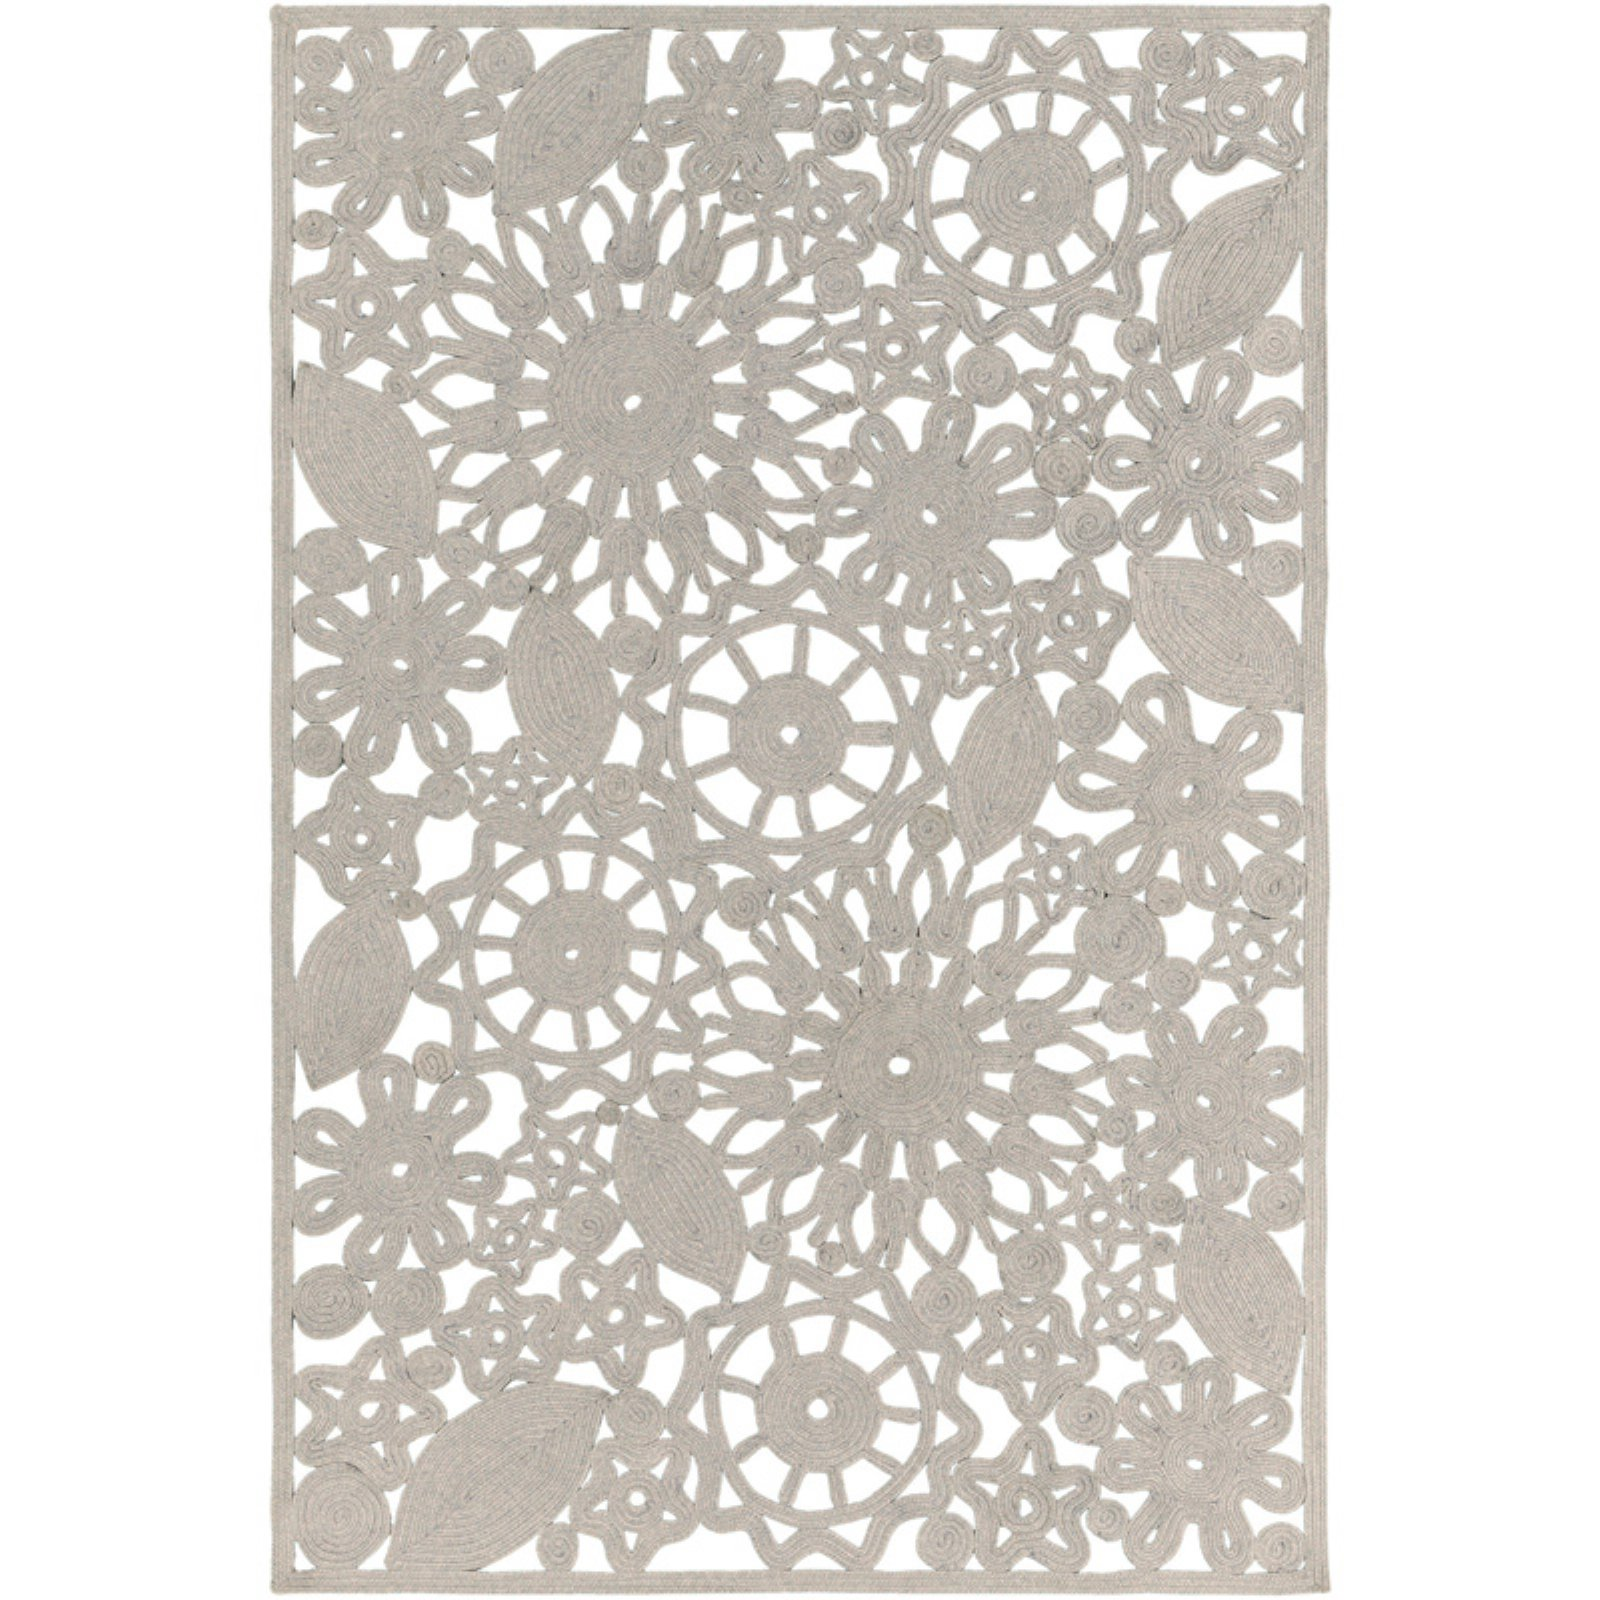 Surya Sanibel SNB401 Indoor / Outdoor Area Rug